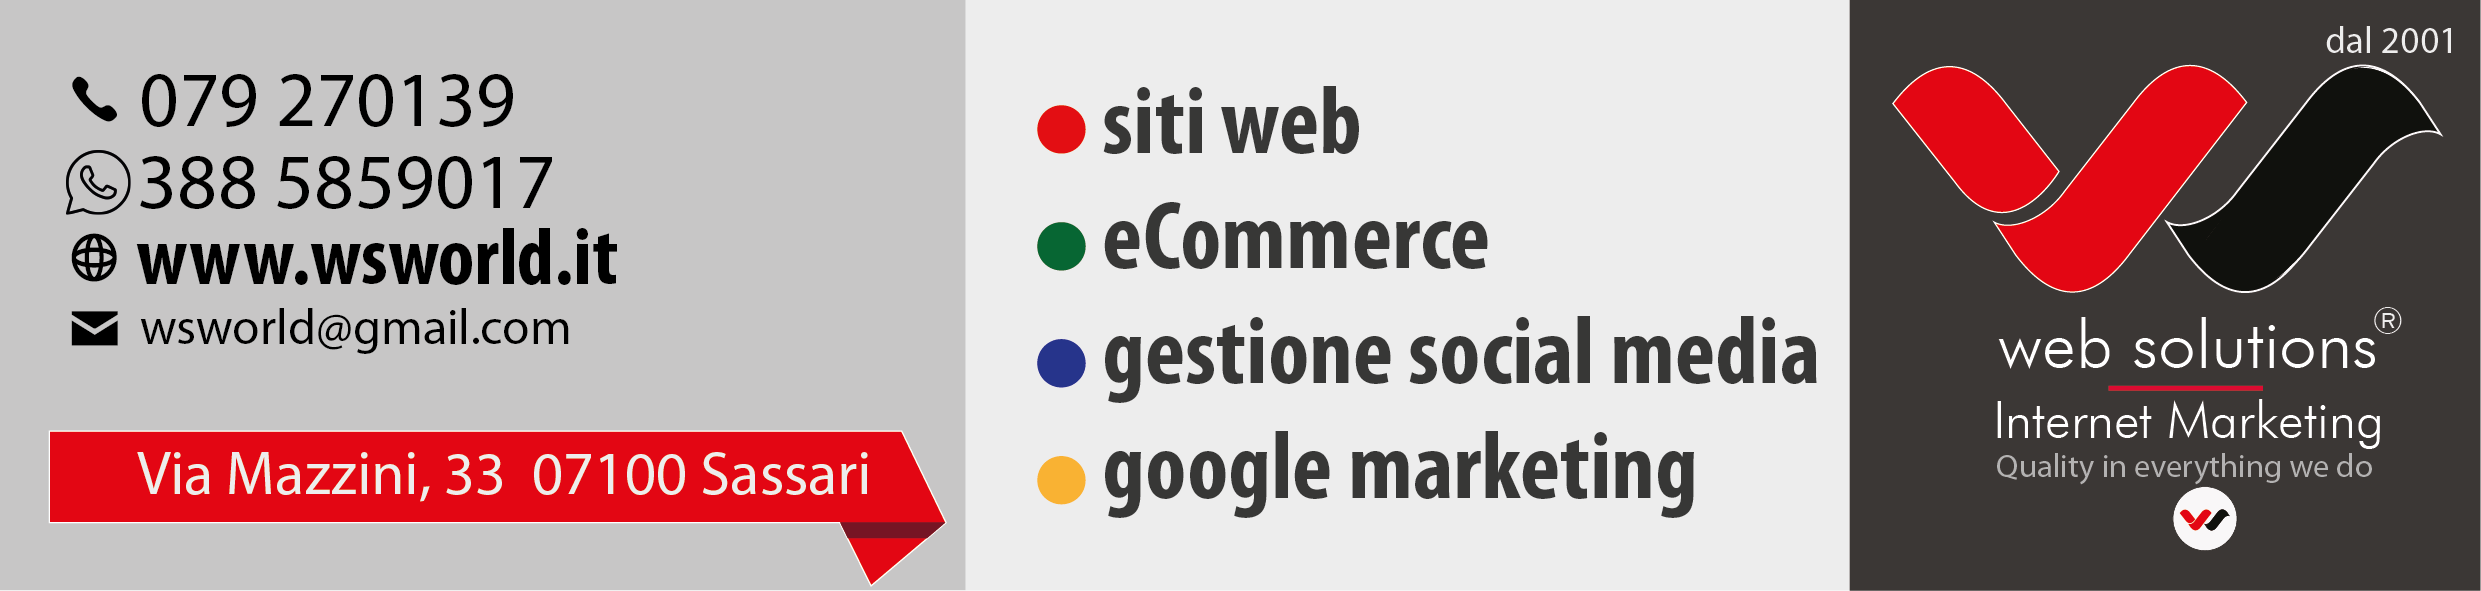 Web Solutions internet marketing in Sardegna